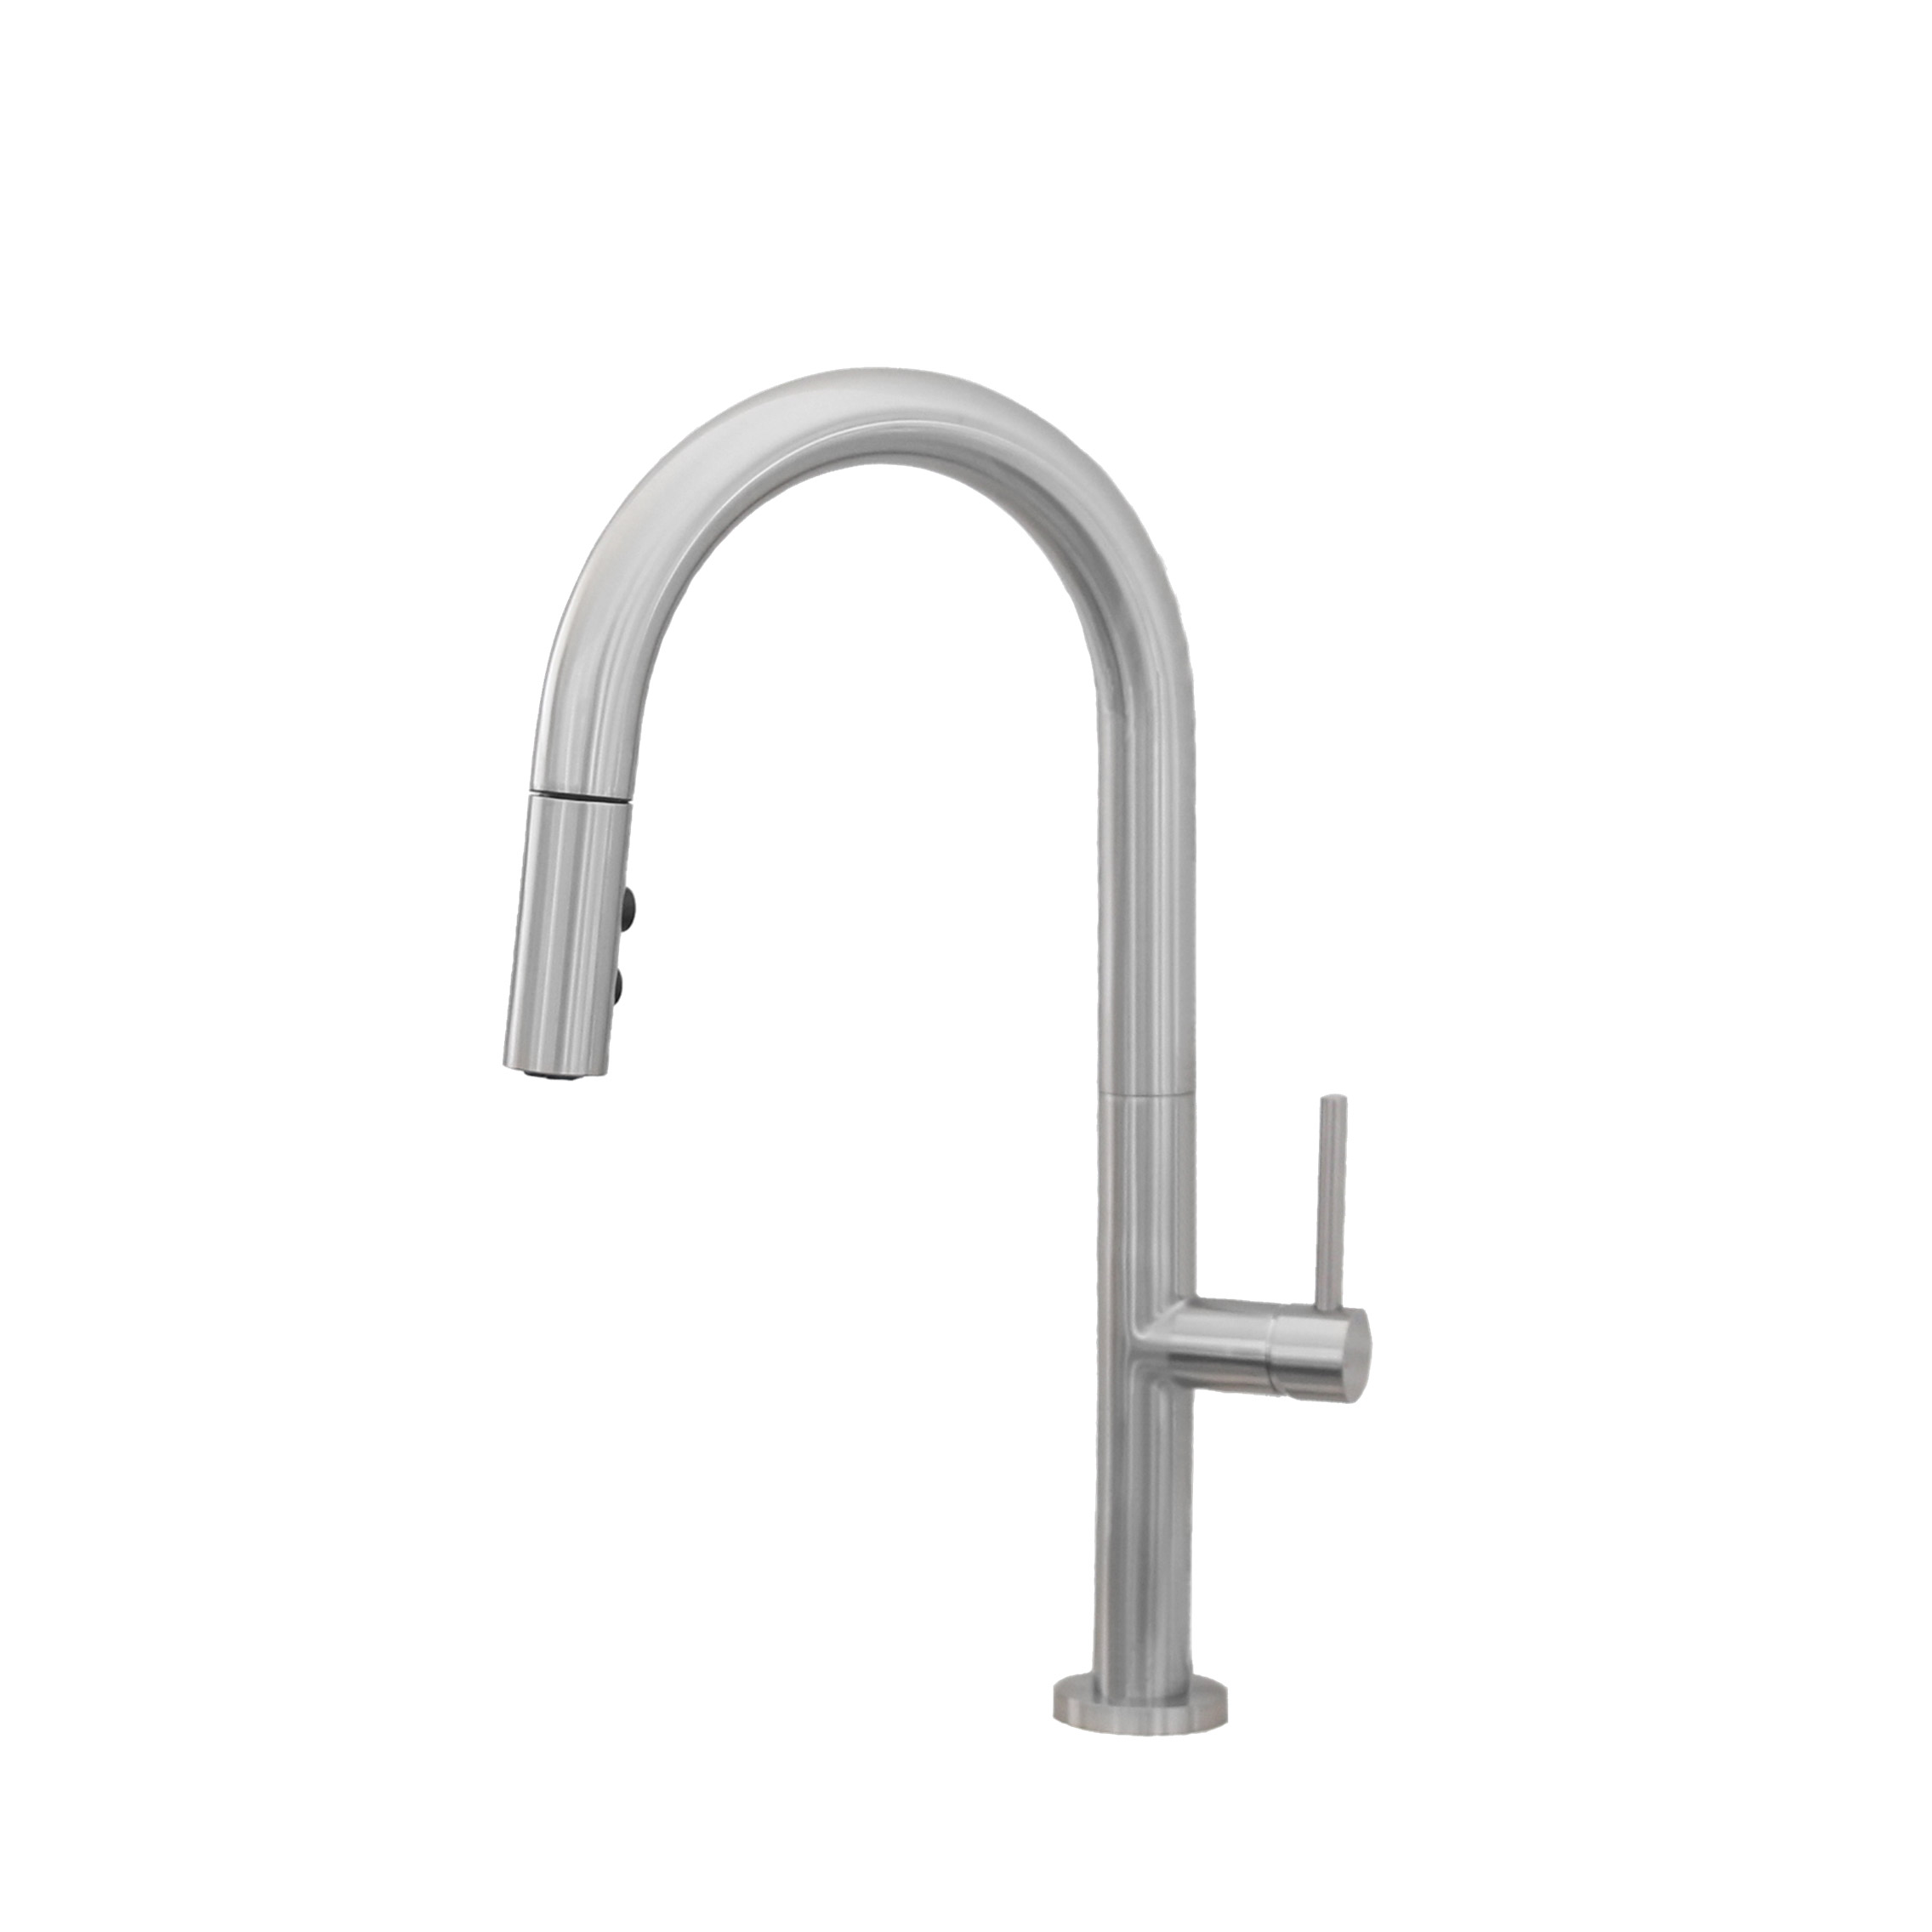 Stylish - Catania K-141B  Pull Down Single Handle Kitchen Faucet - Brushed Nickel